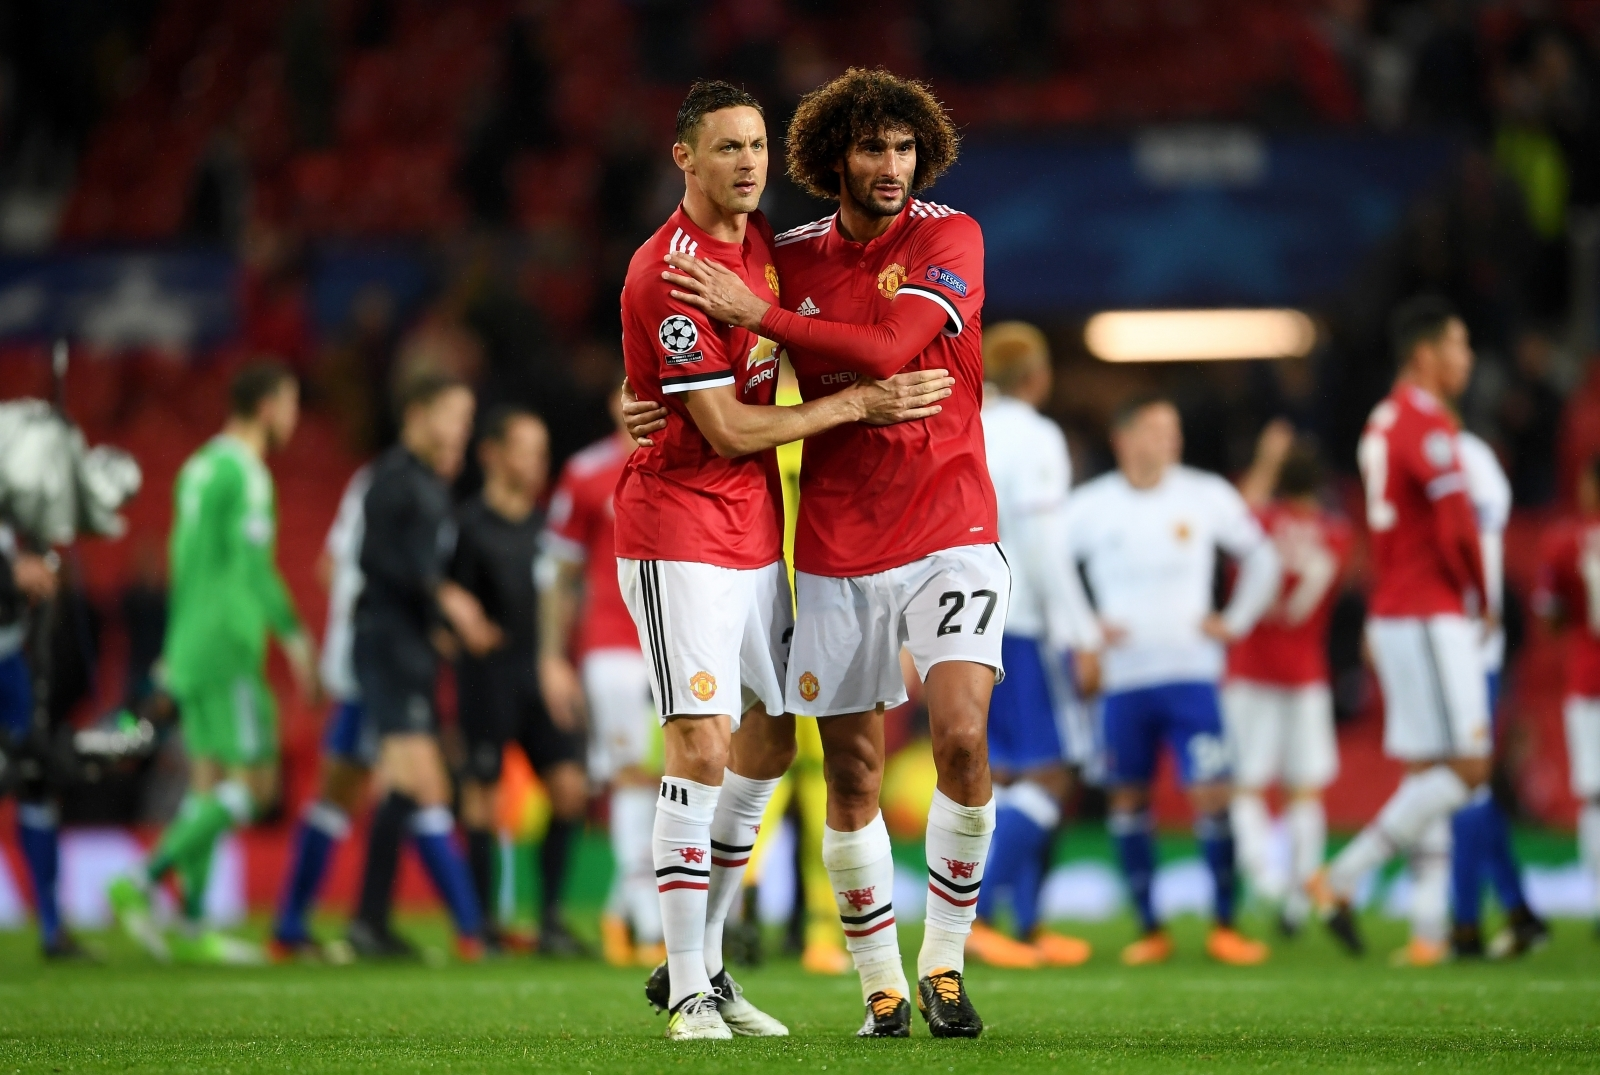 Manchester United's Marouane Fellaini out of CSKA Moscow clash